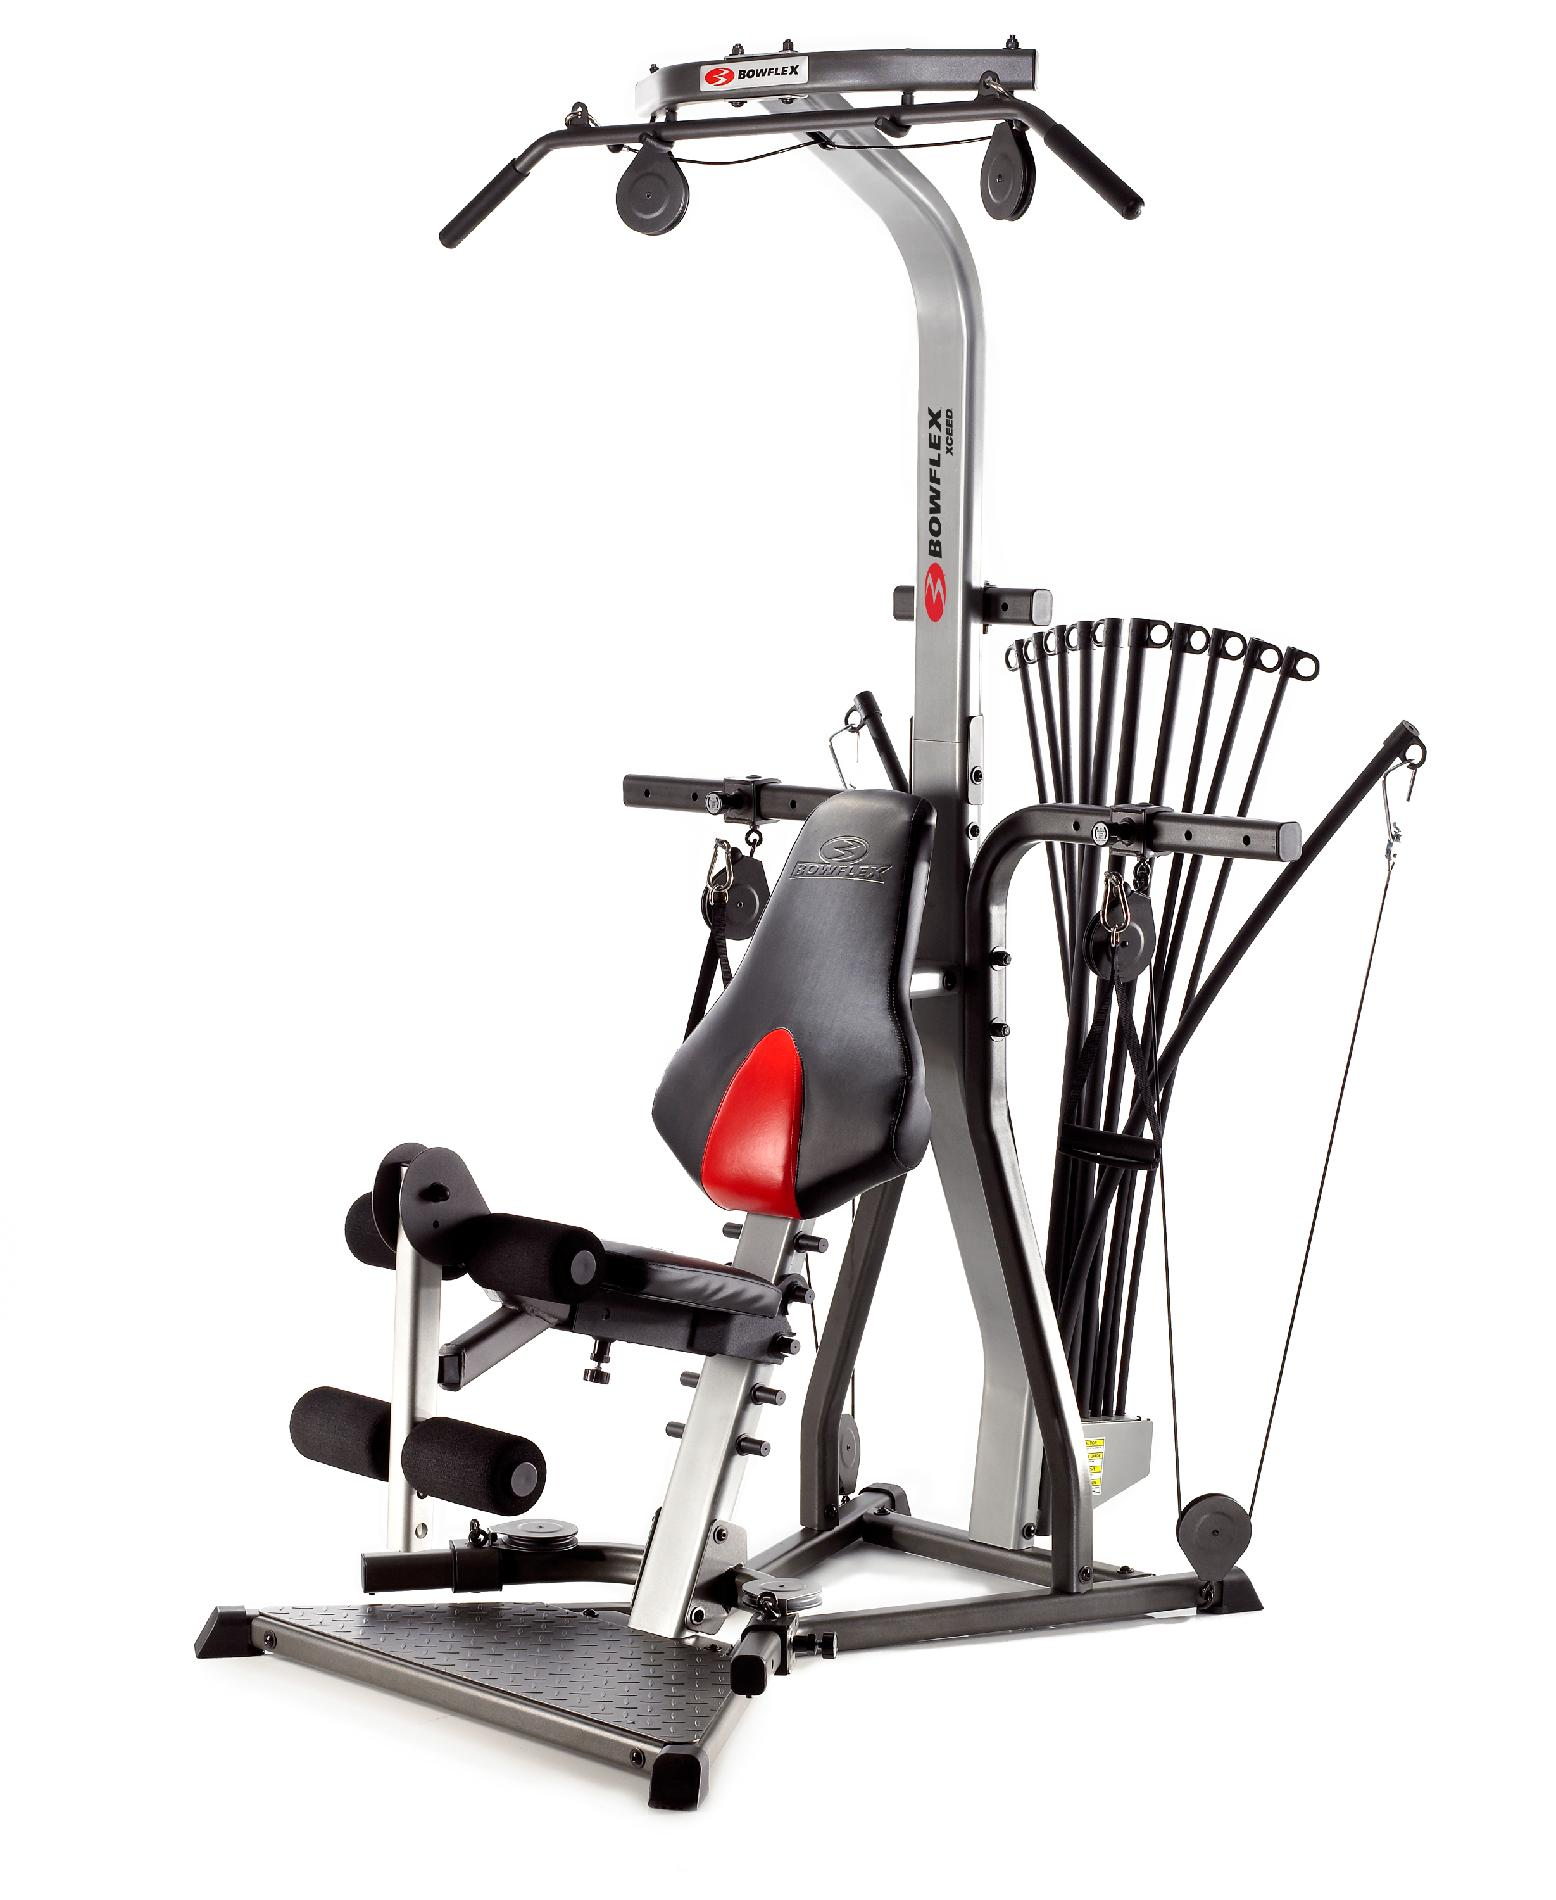 Bowflex Xceed Home Gym